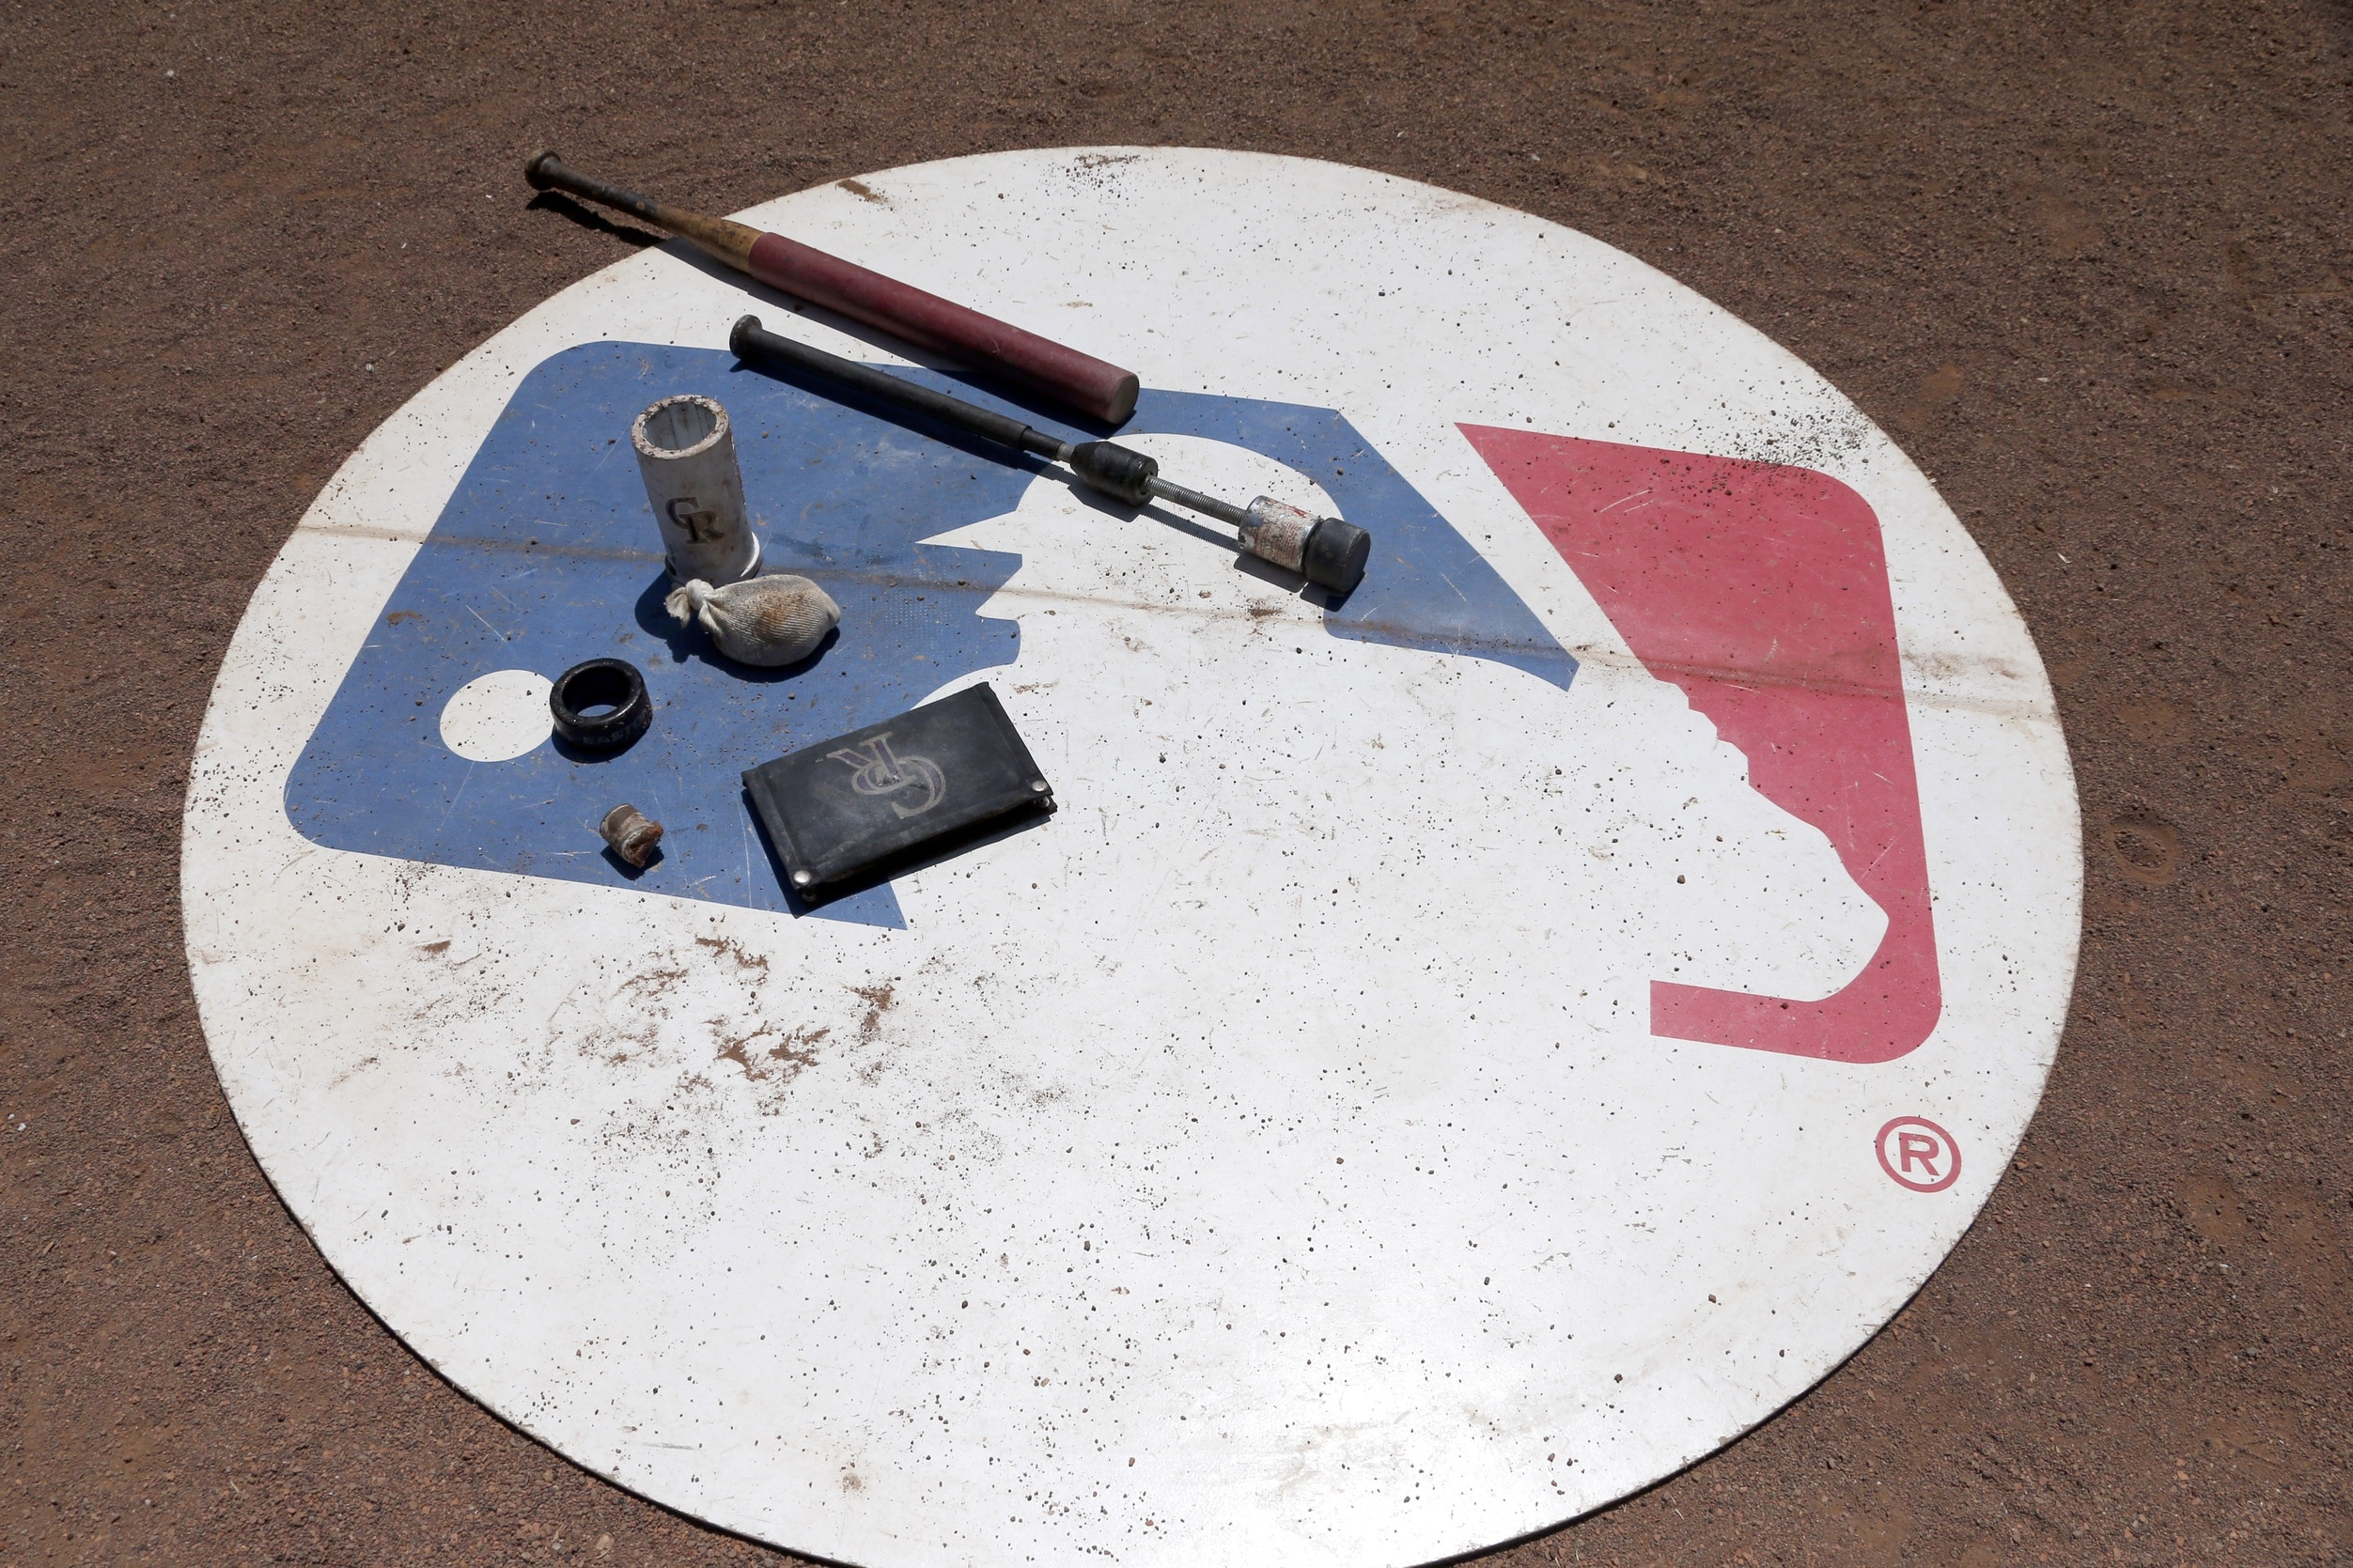 Aug 11, 2016; Arlington, TX, USA; A general view of the MLB logo with Colorado Rockies batting gear on it during the game against the Texas Rangers at Globe Life Park in Arlington. Colorado Rockies won 12-9. Mandatory Credit: Tim Heitman-USA TODAY Sports